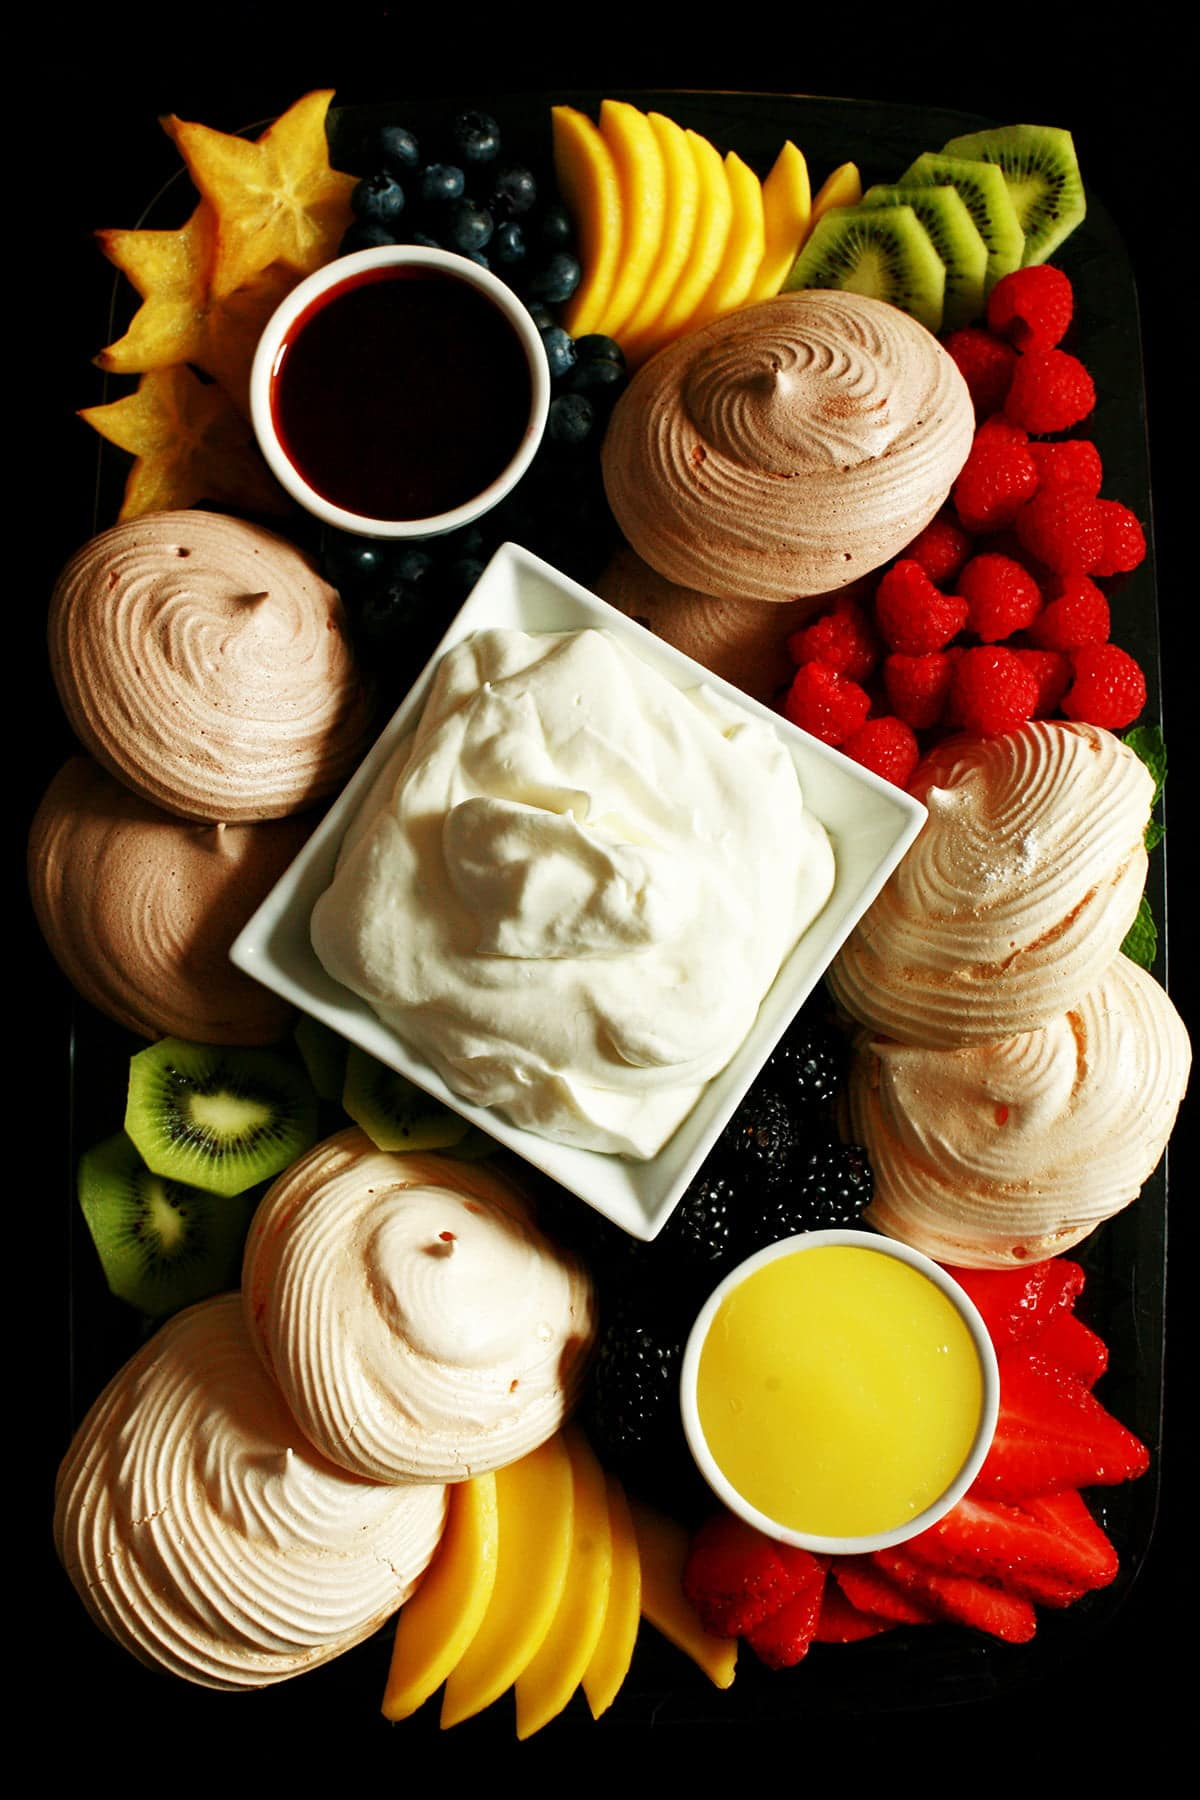 A Pavlova Dessert Charcuterie board: A bowl of whipped cream and two little bowls of sauce - lemon curd and chocolate sauce - are surrounded by mini pavlova meringues and a selection of fresh fruits.